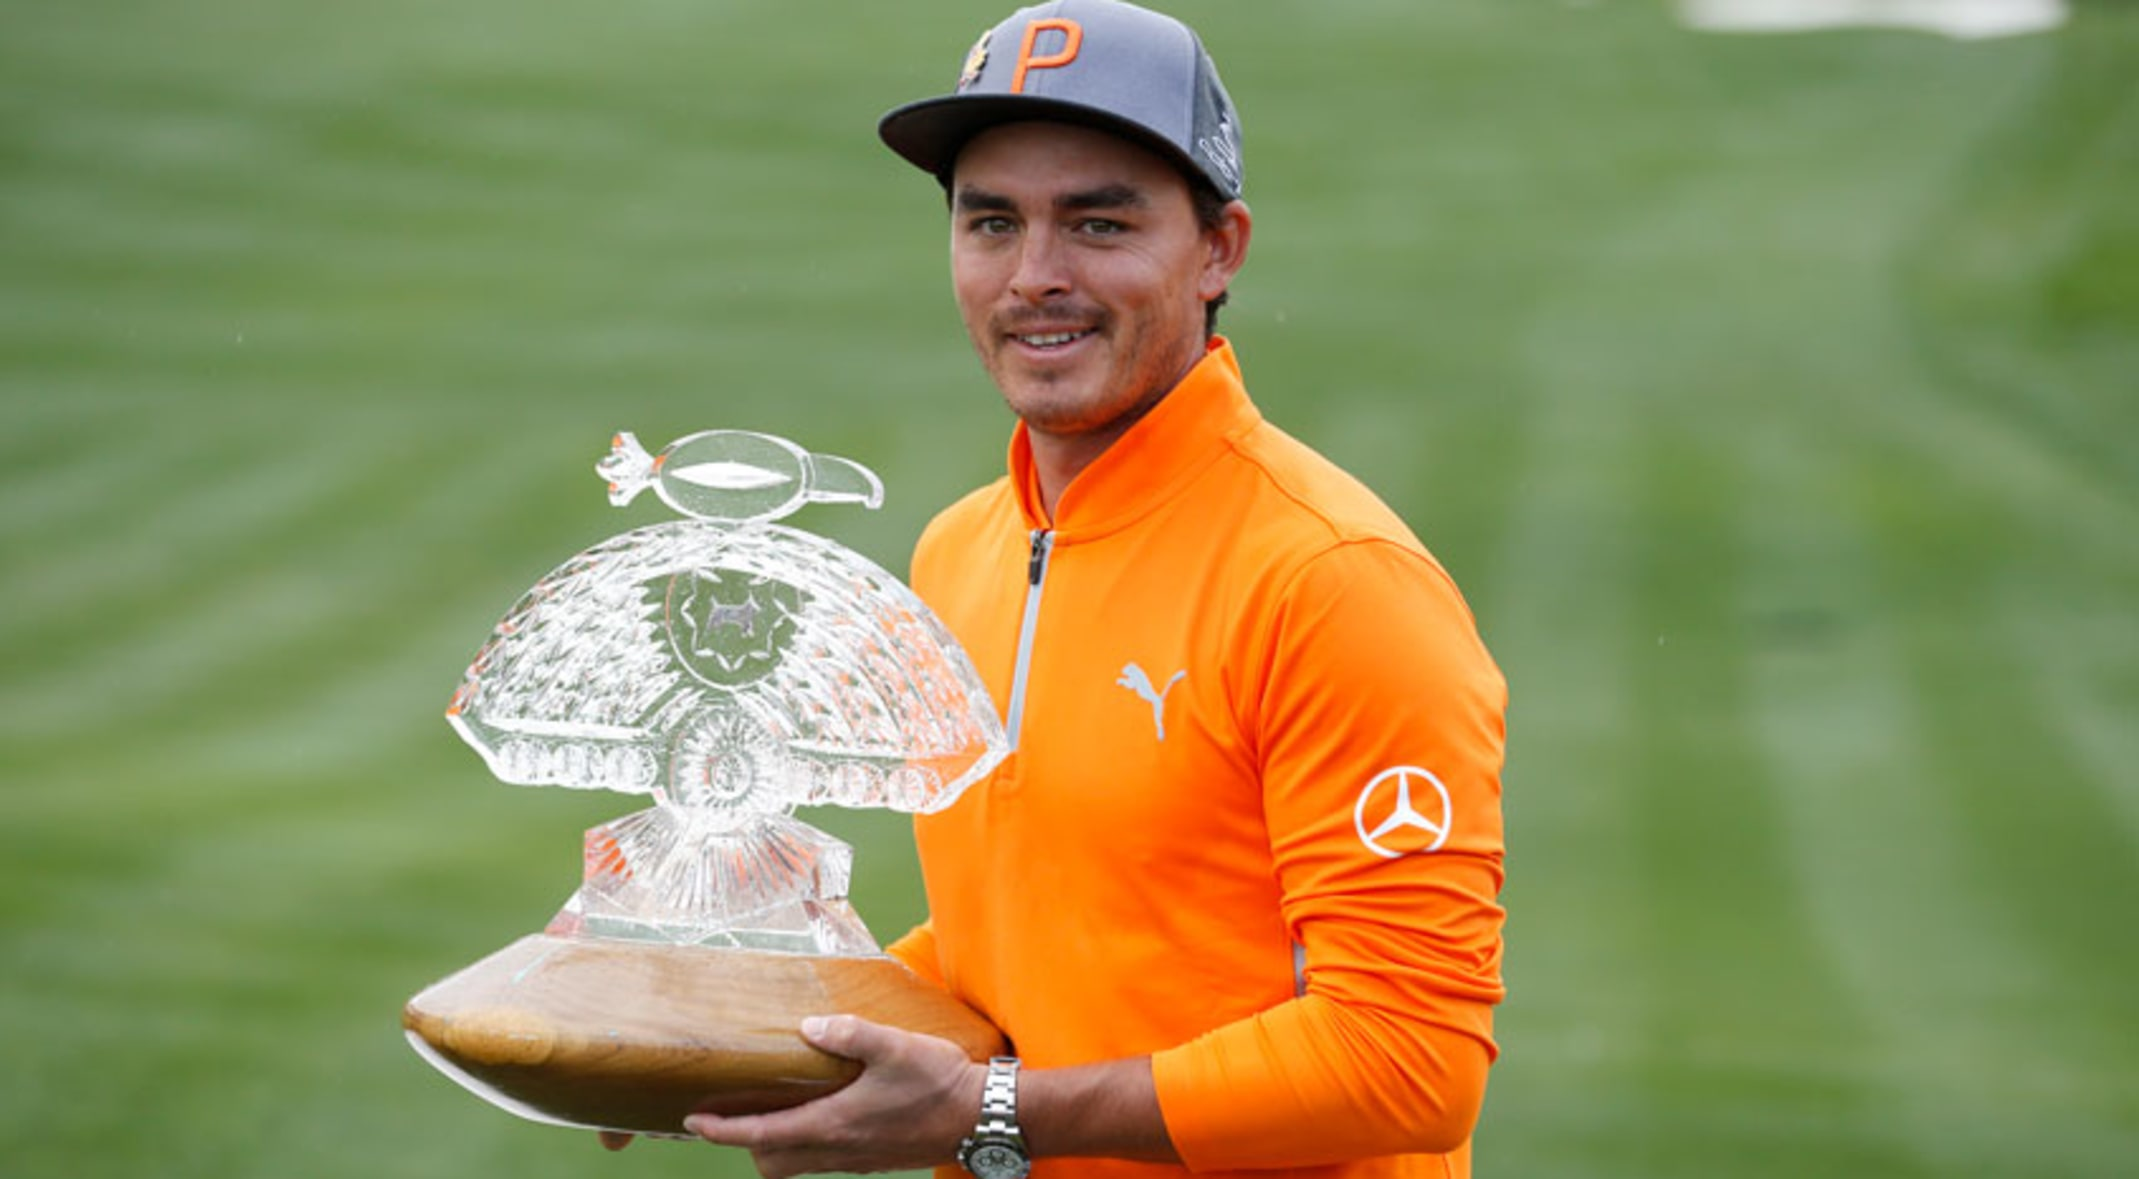 Defending champion Rickie Fowler